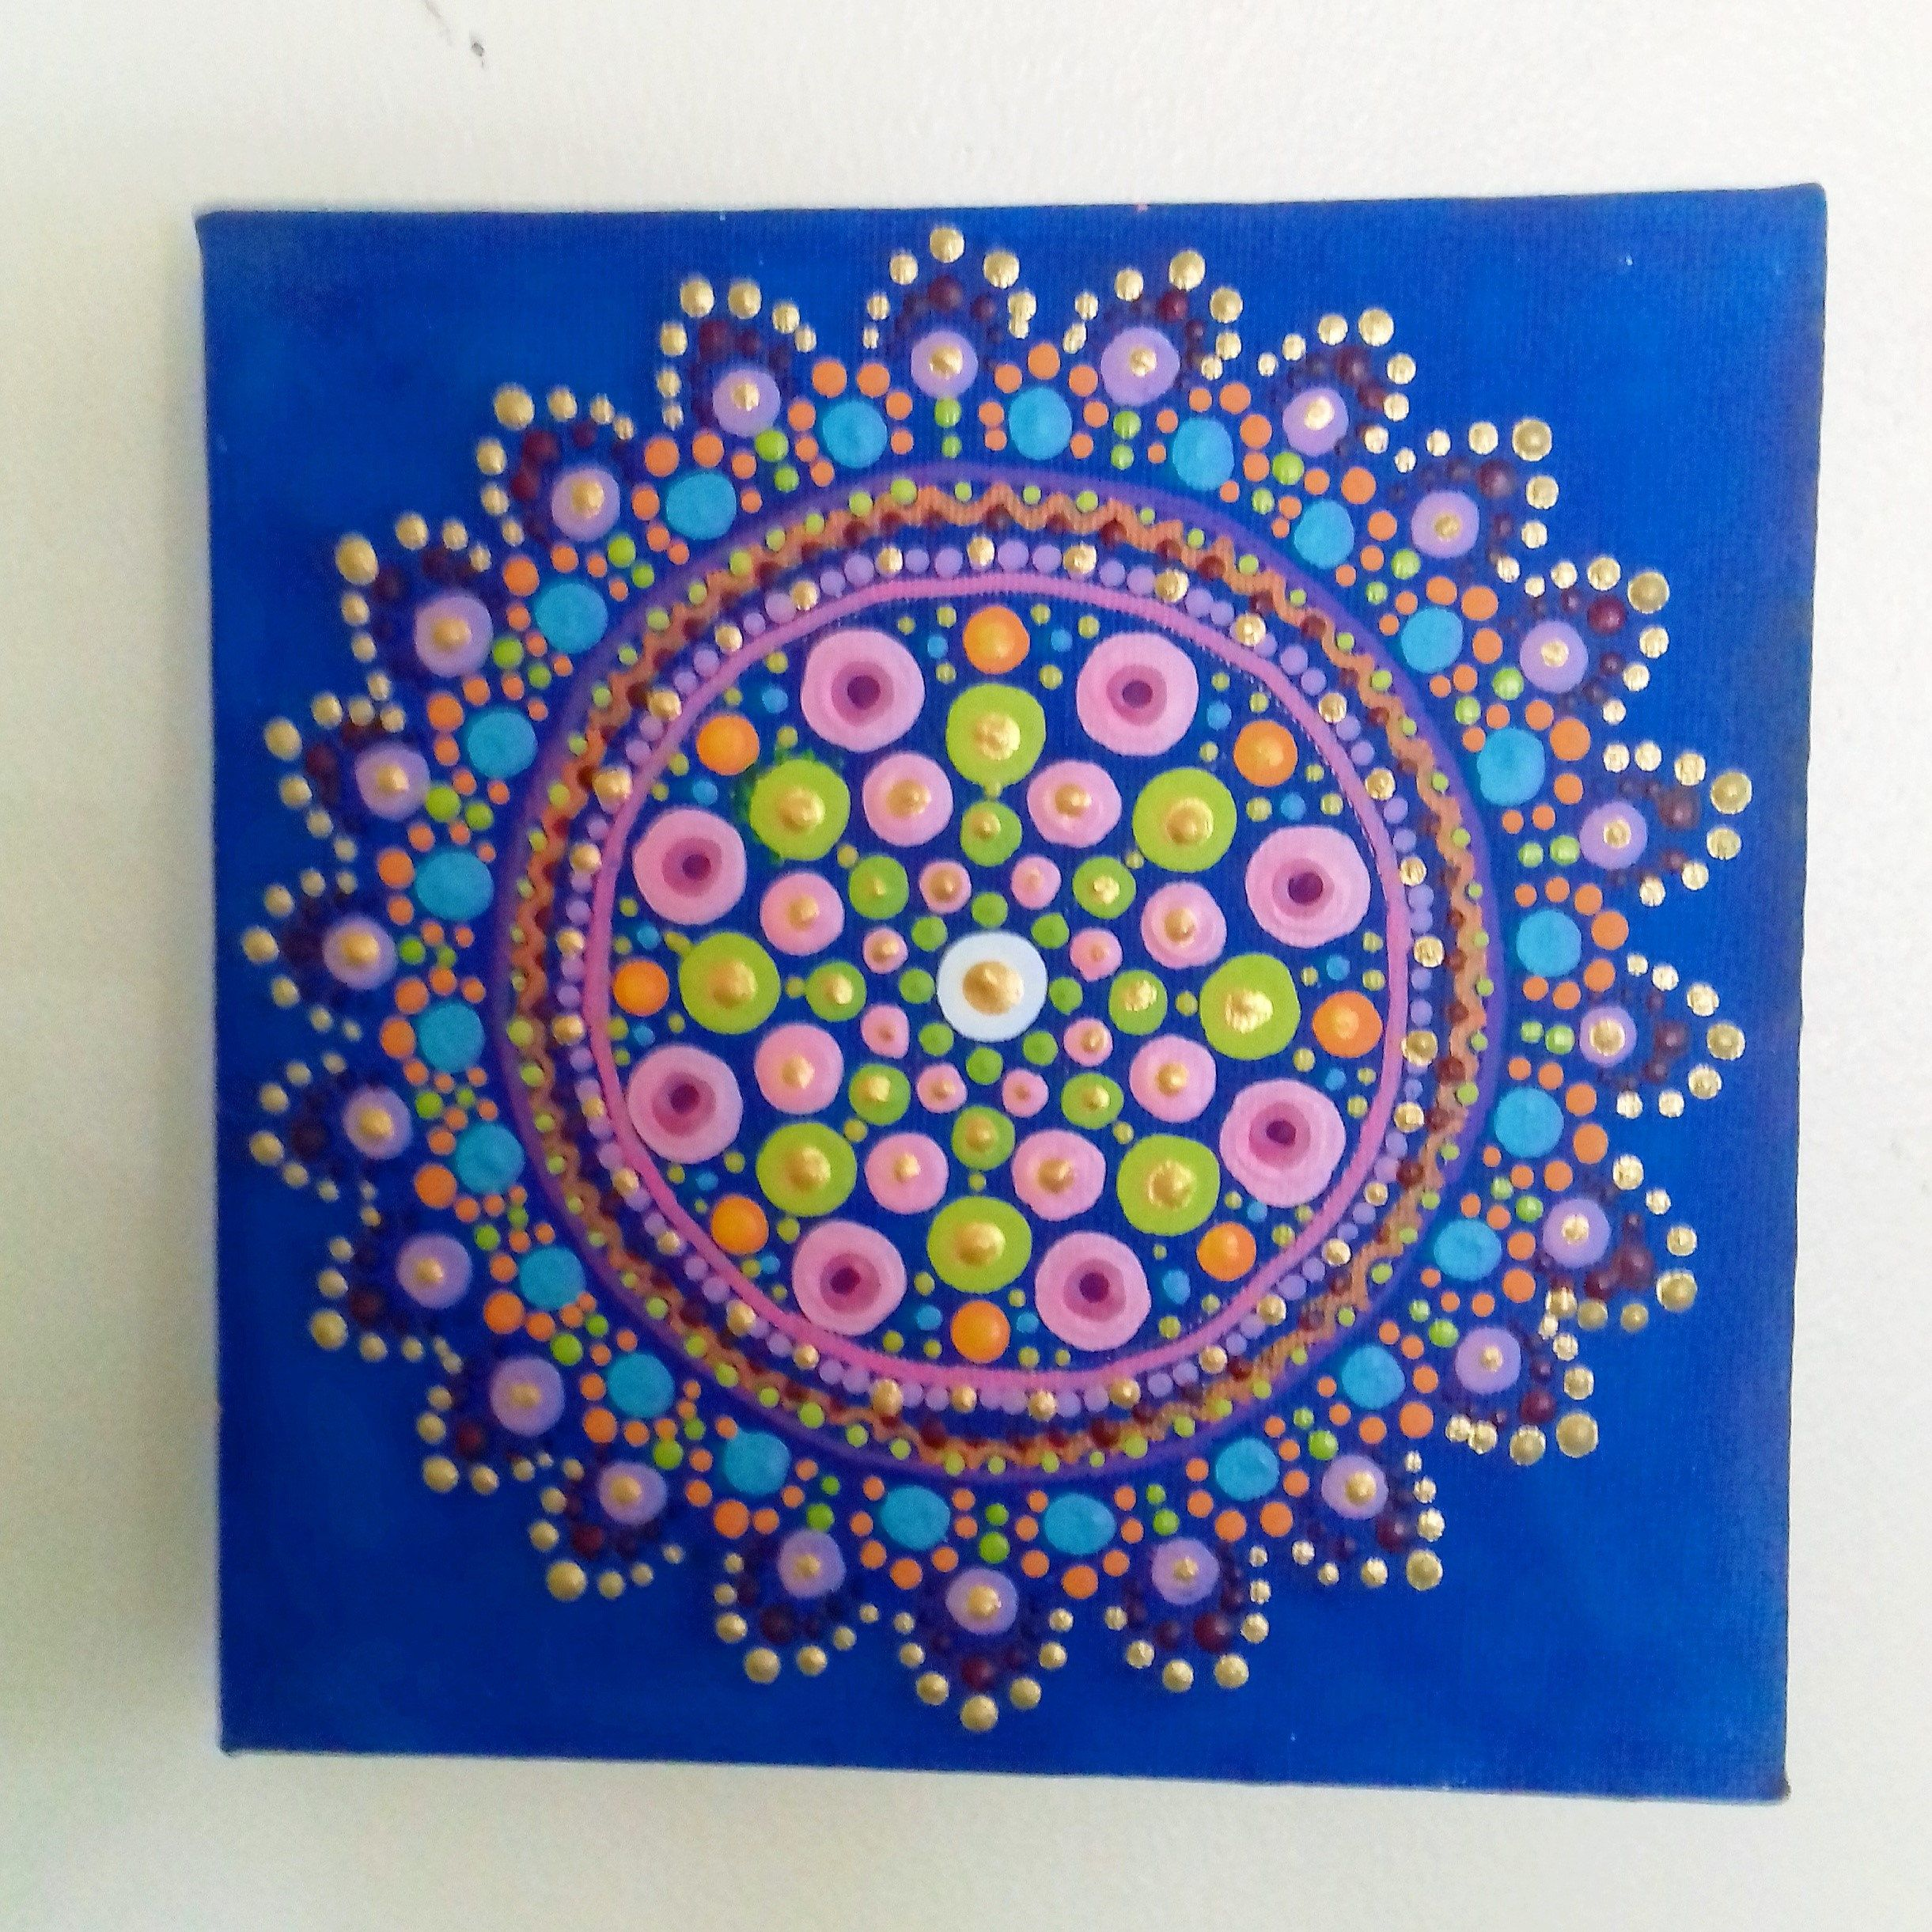 Wall Art Mandala Blue Turquoise Gold Psychedelic Original  # Muebles Tassone